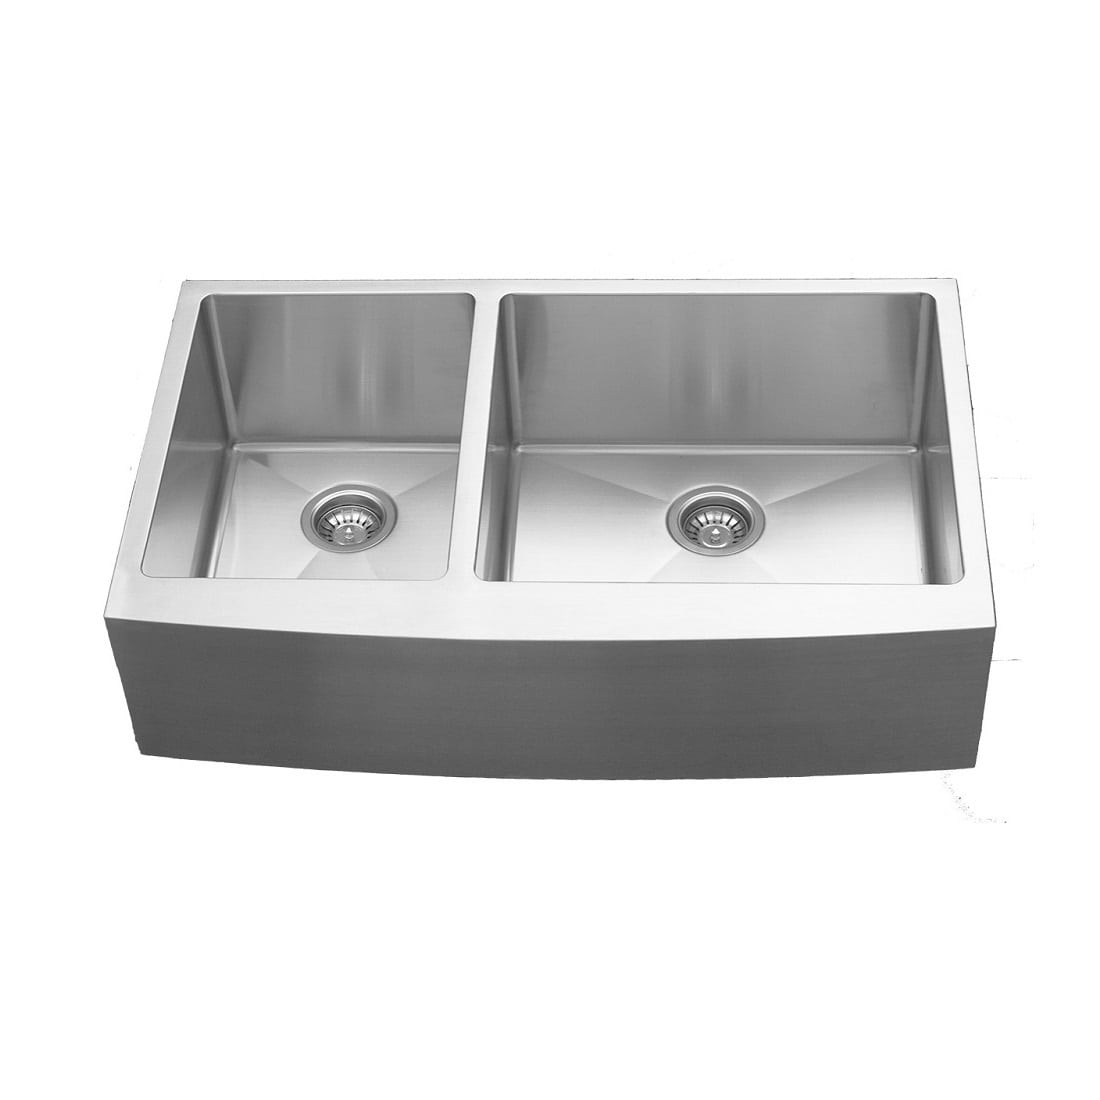 Can You Use Undermount Sink With Laminate Countertops Karran Elite El 87 Double Undermount Bowl W Apron